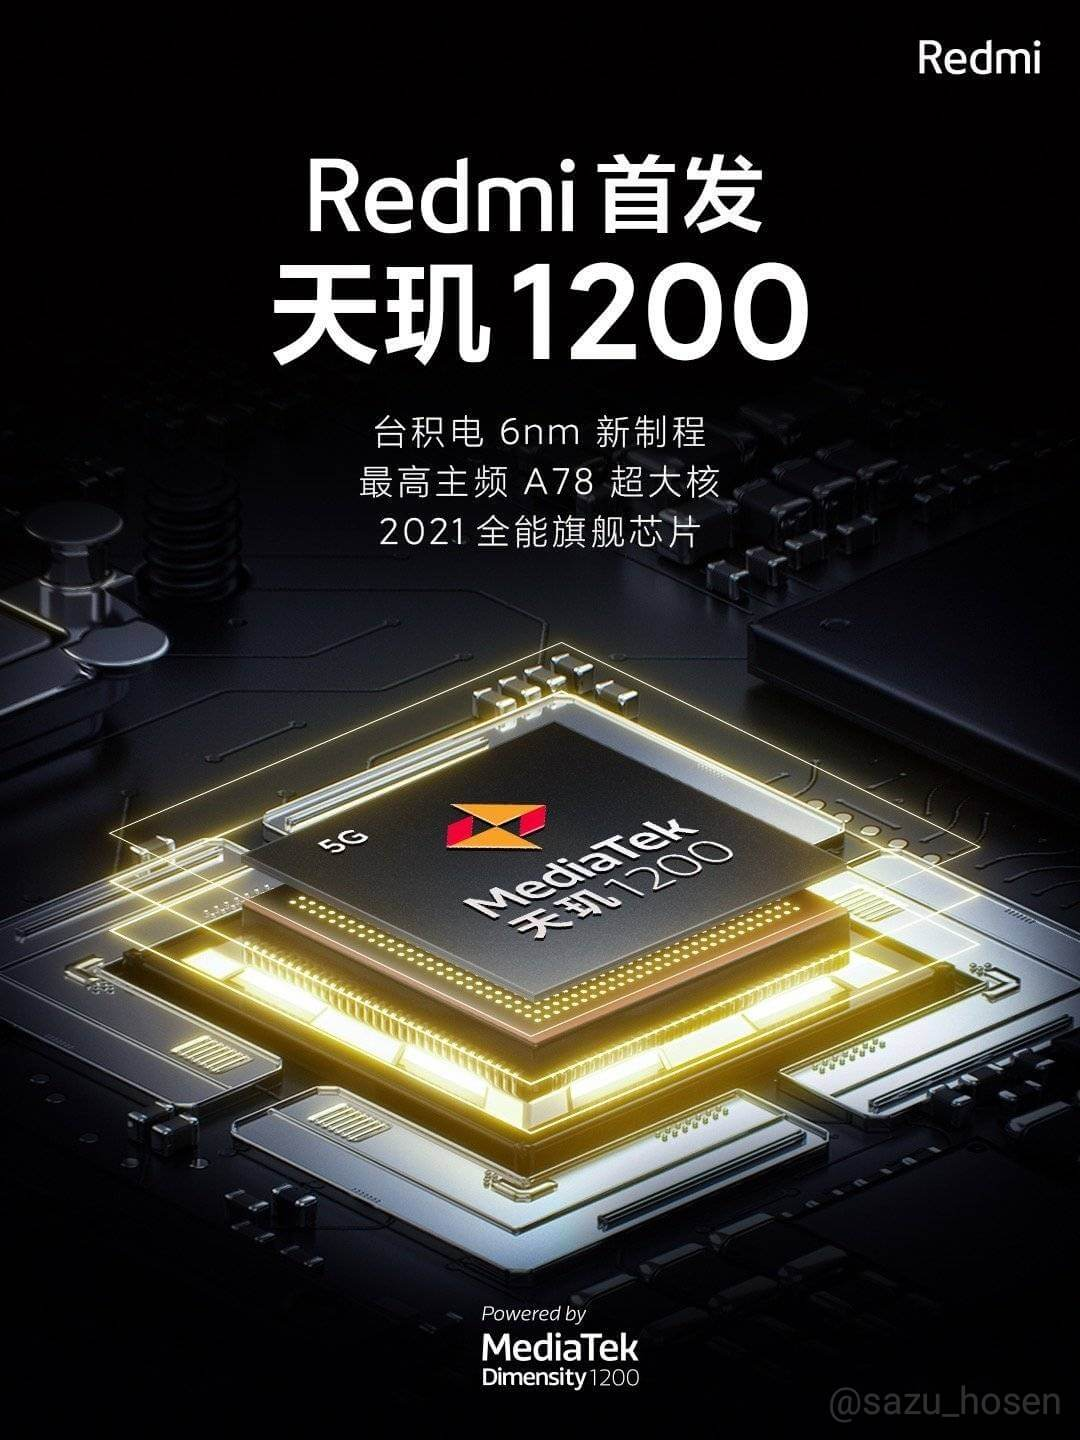 Realme X9 pro with Dimensity 1200